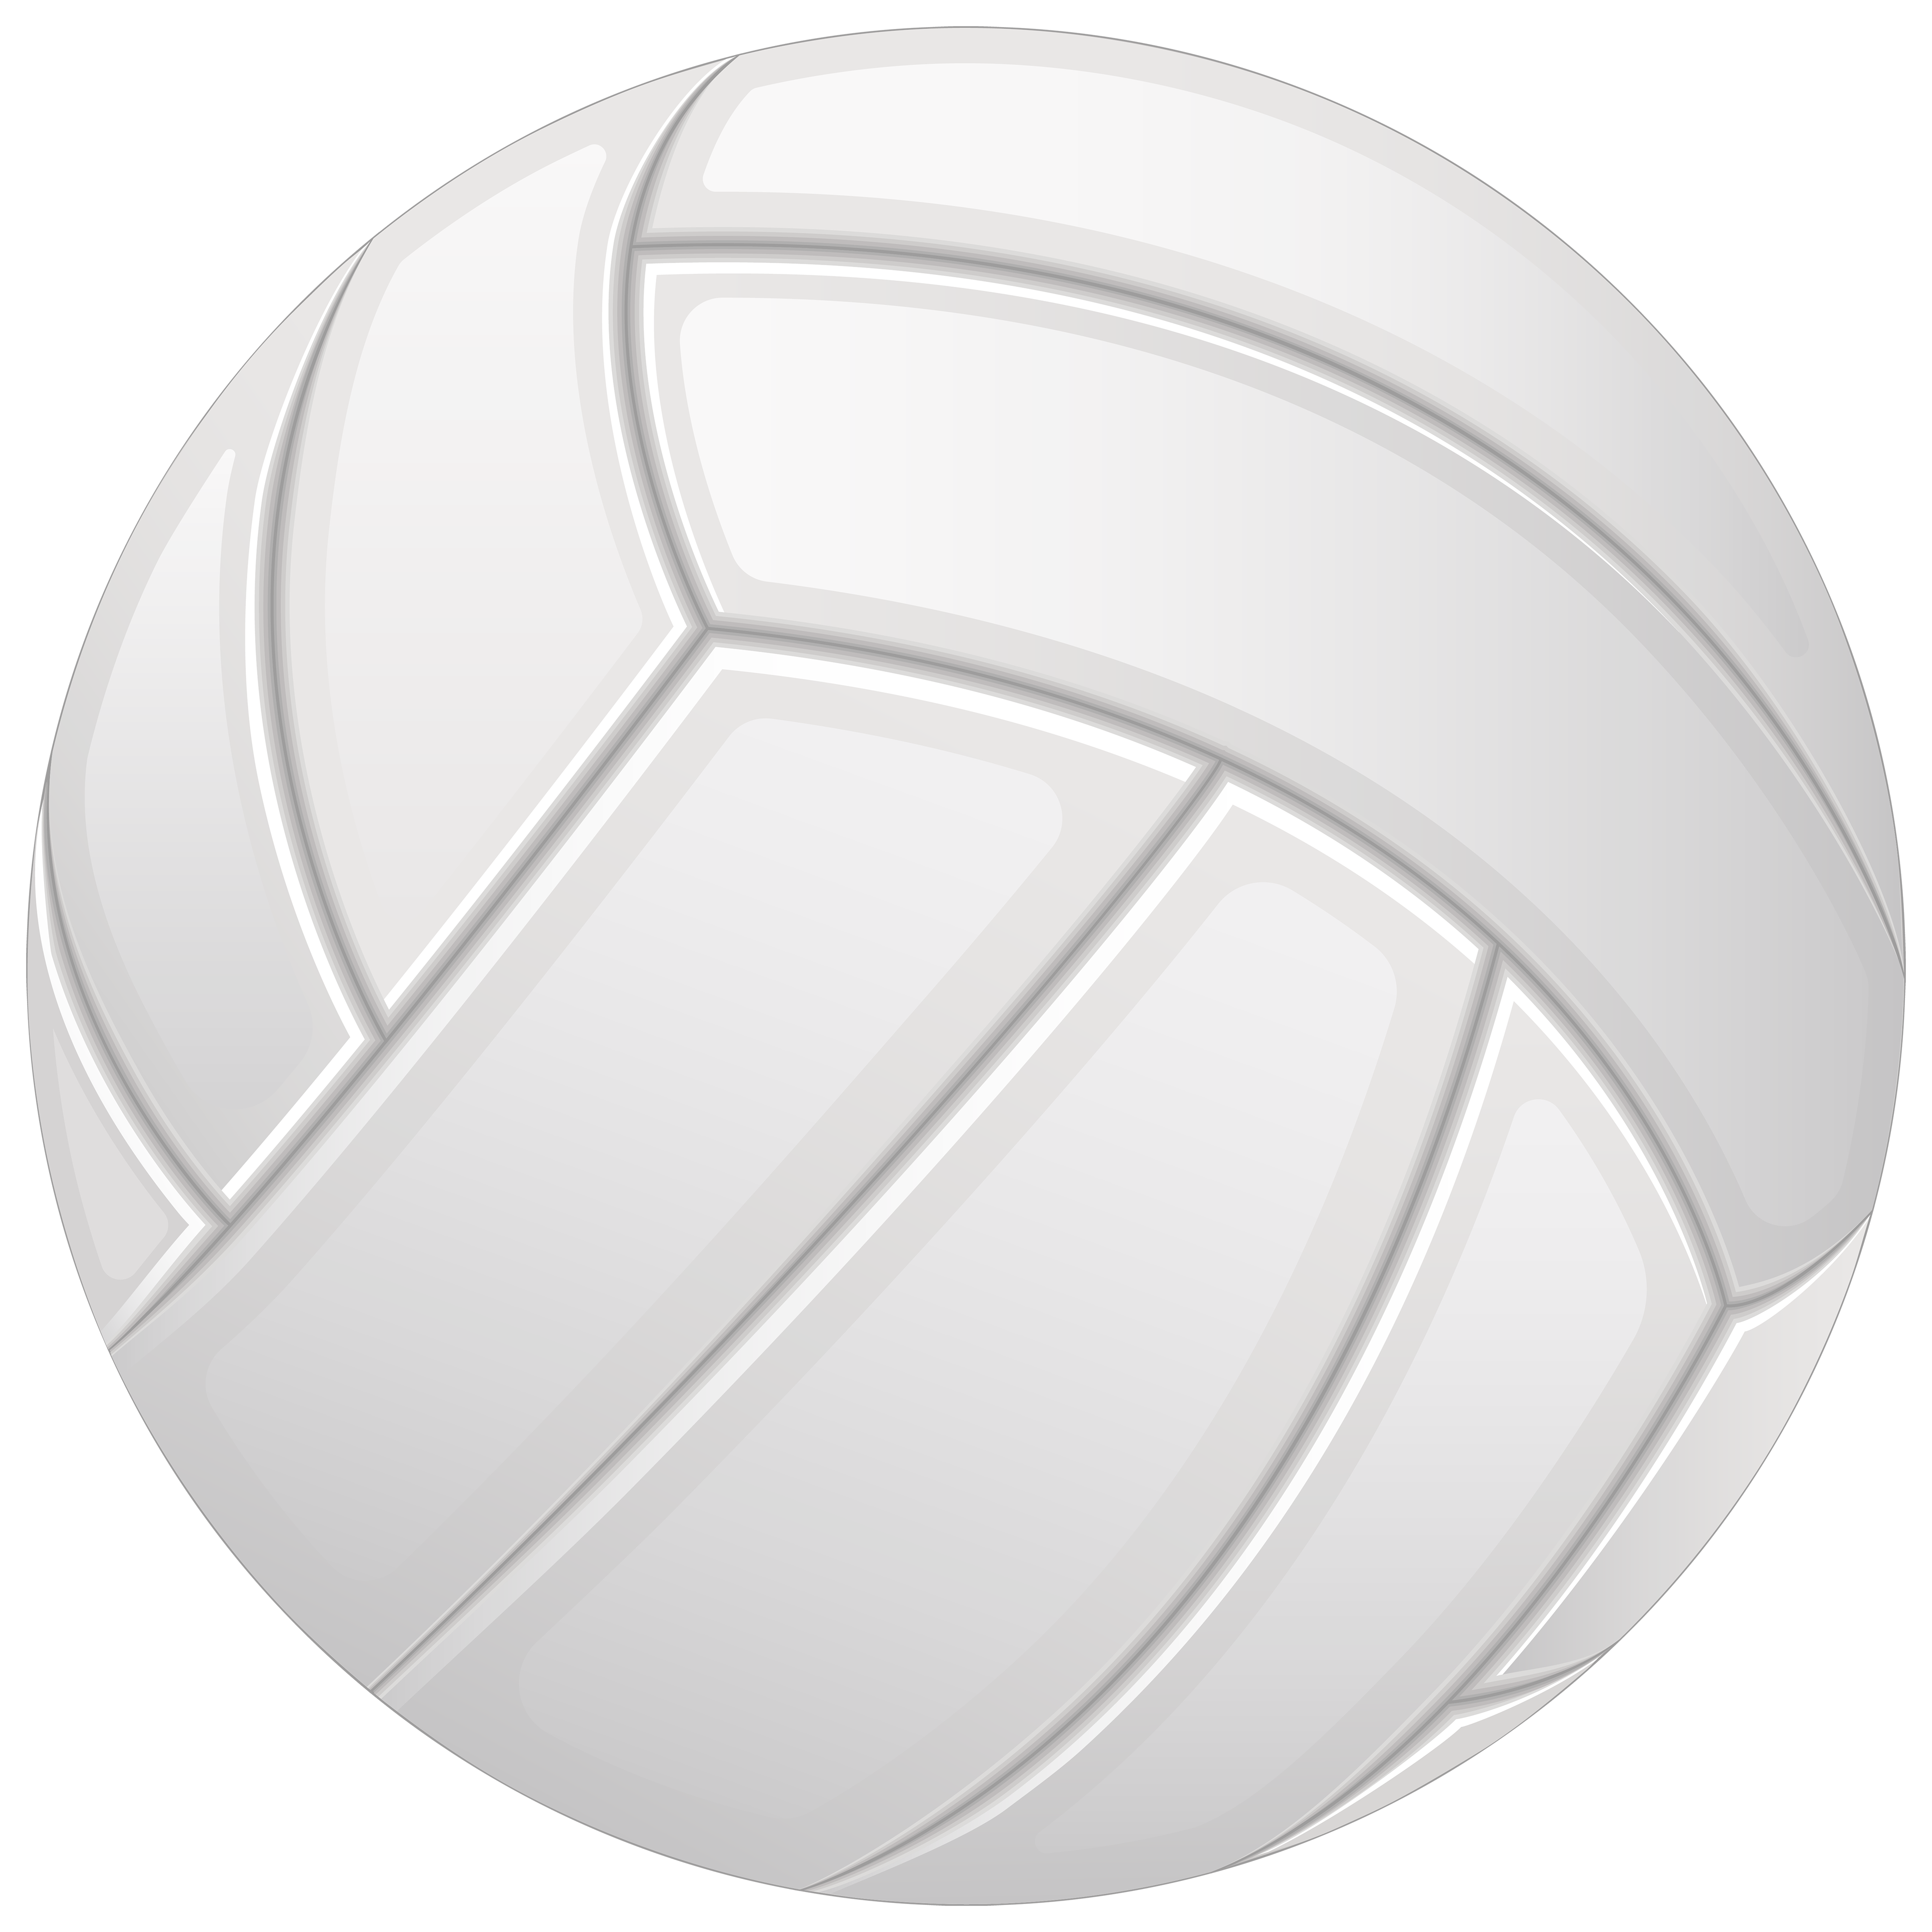 Volleyball PNG Clipart.